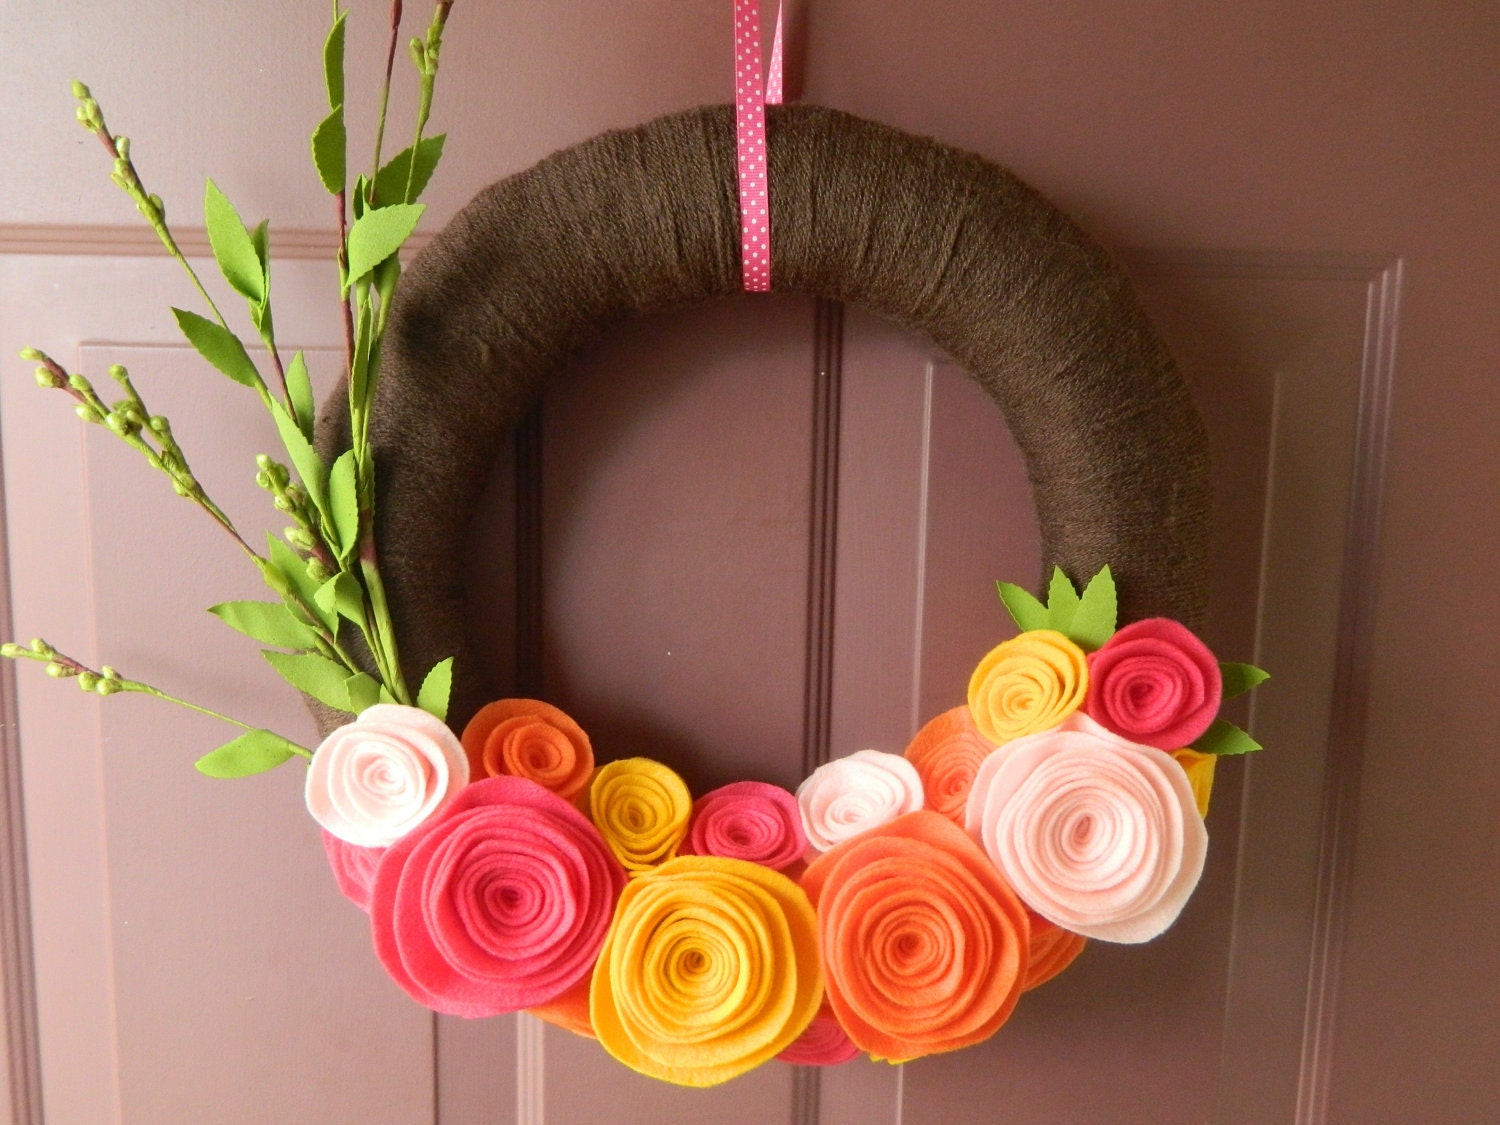 Handmade decorative item for Decoration stuff